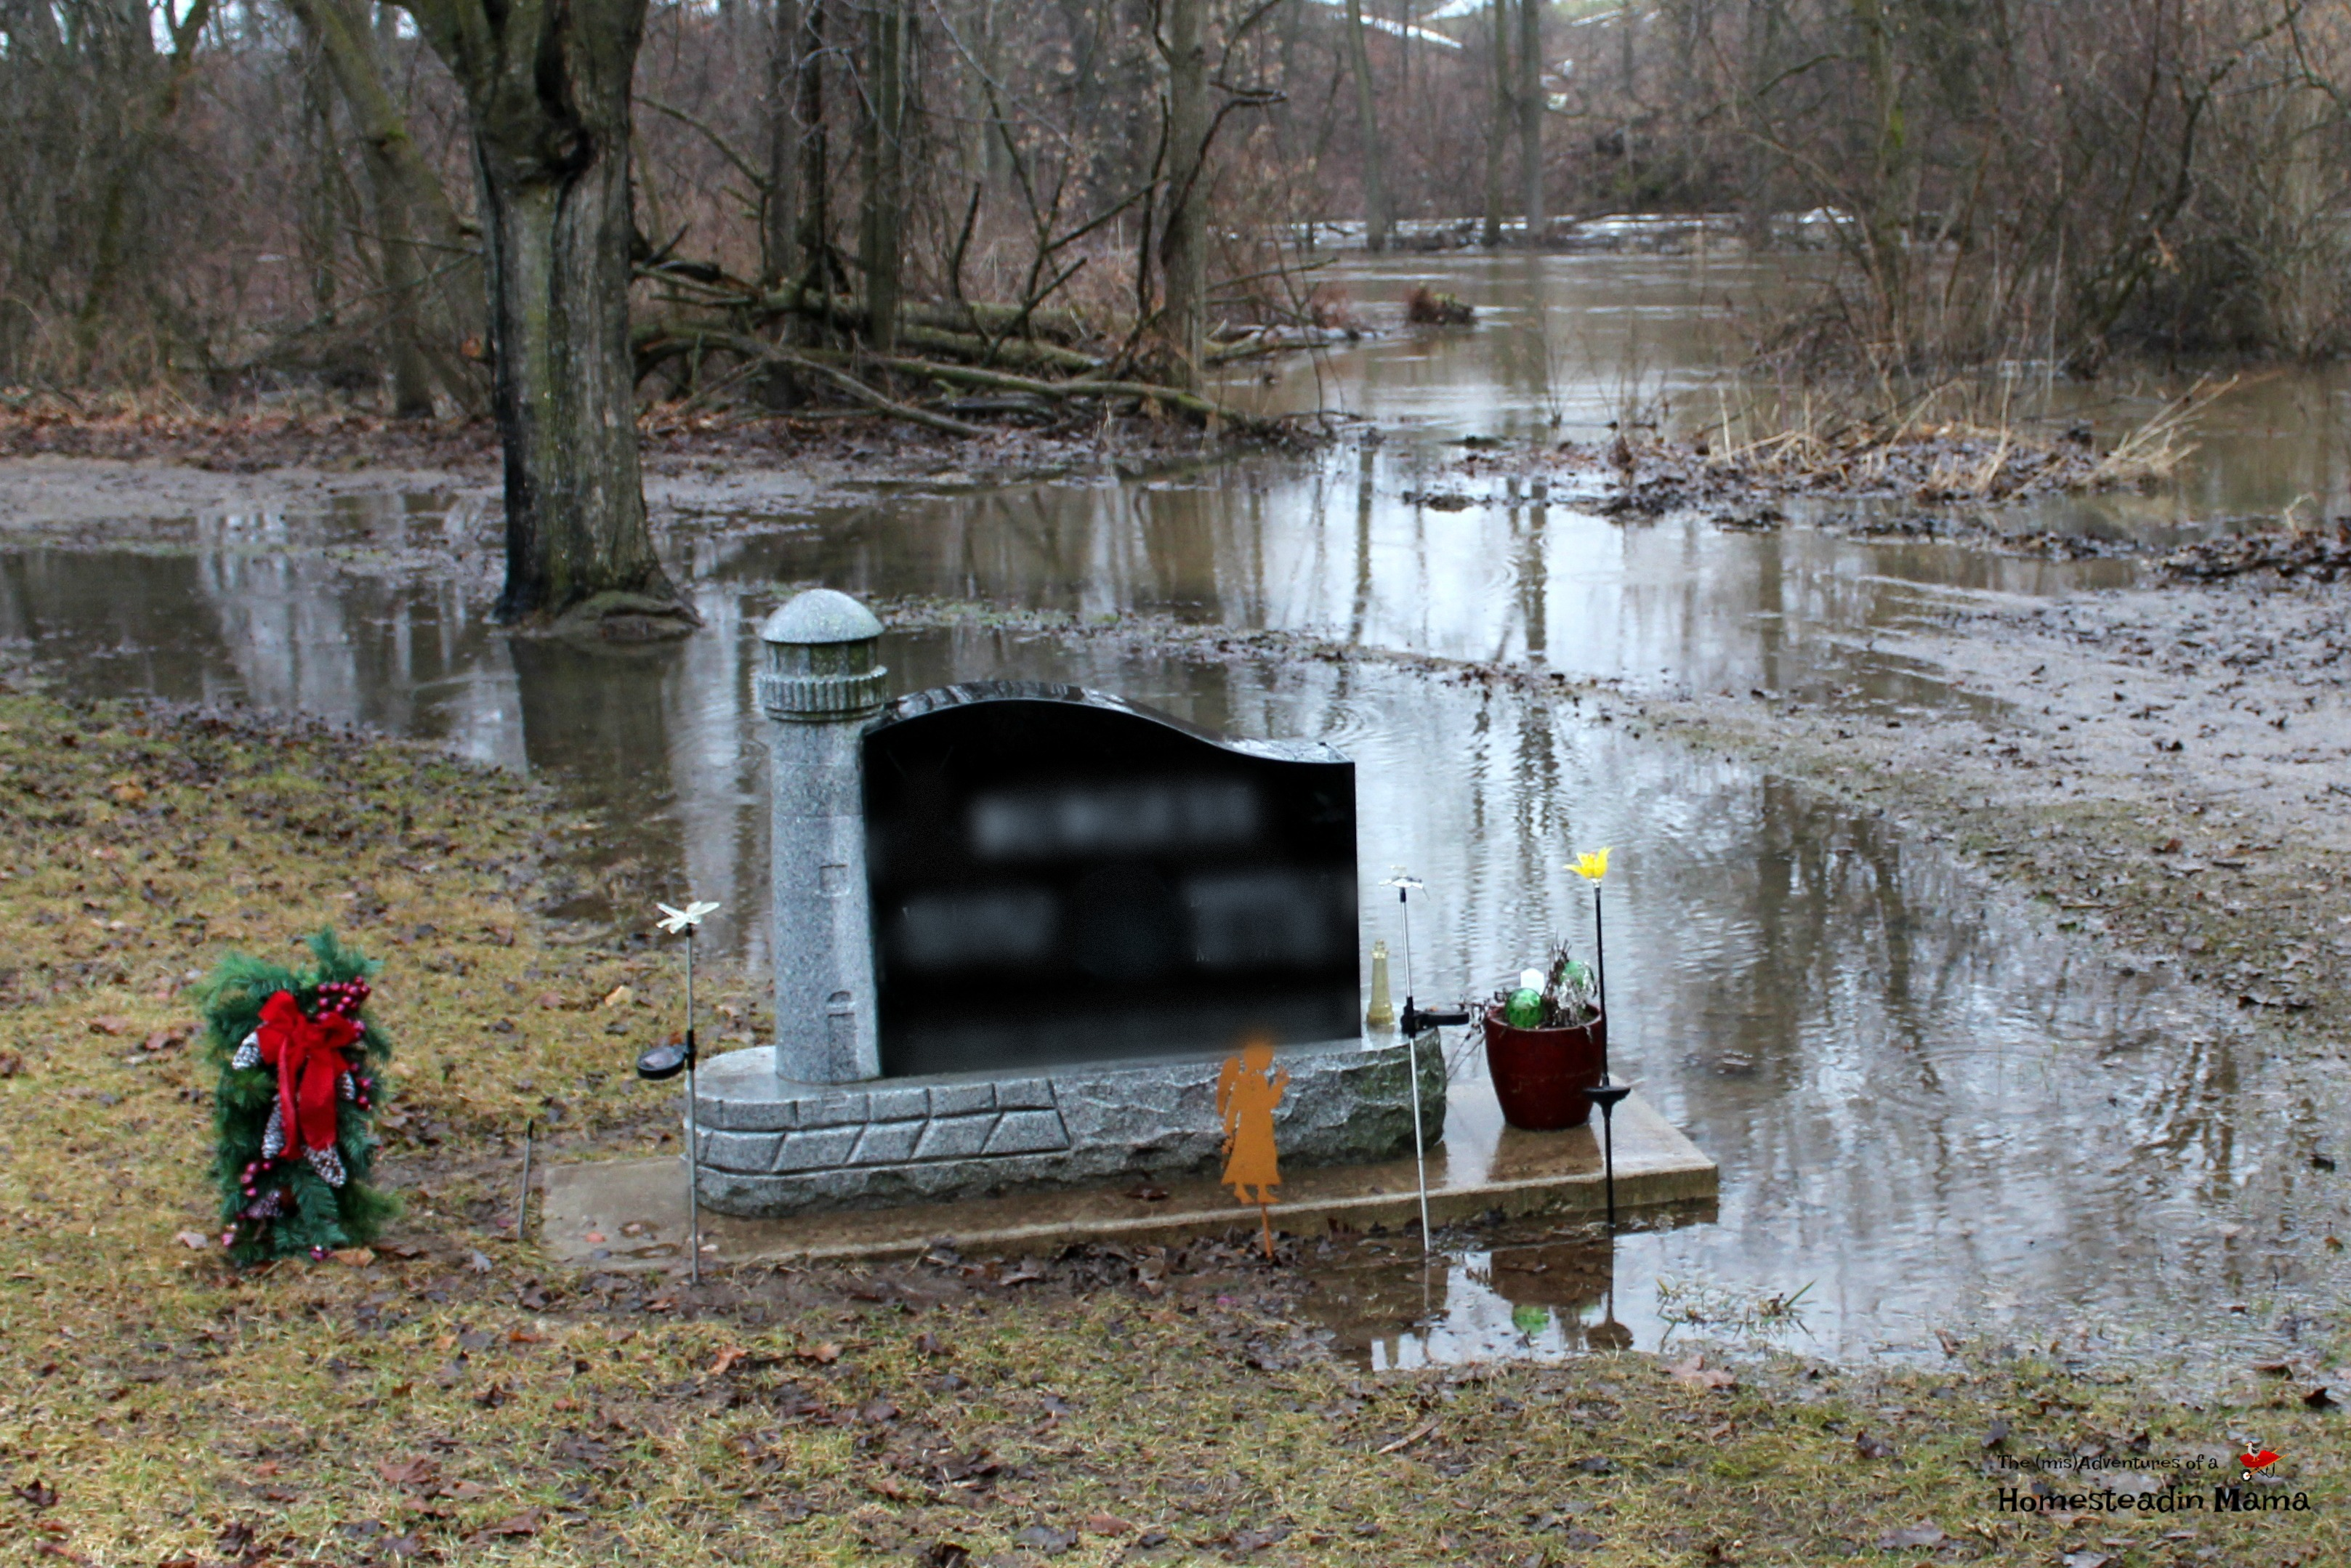 flooding in the cemetary